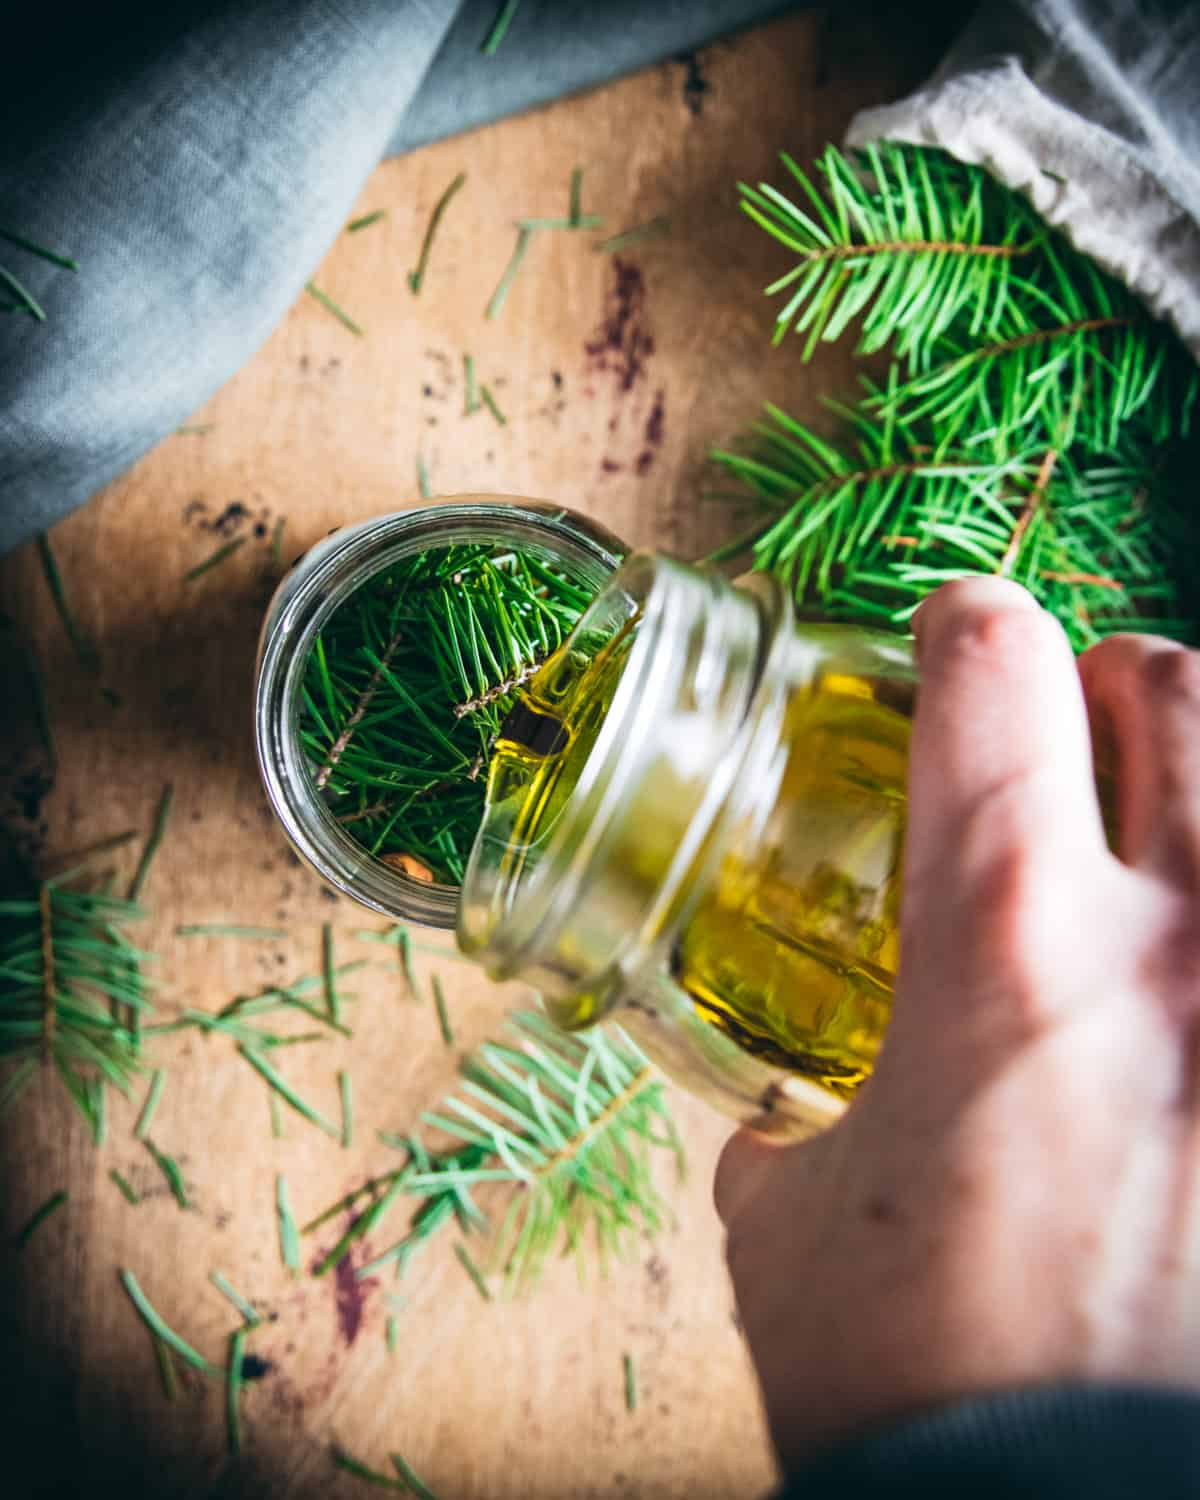 a hand pouring olive oil into a jar of conifer needles